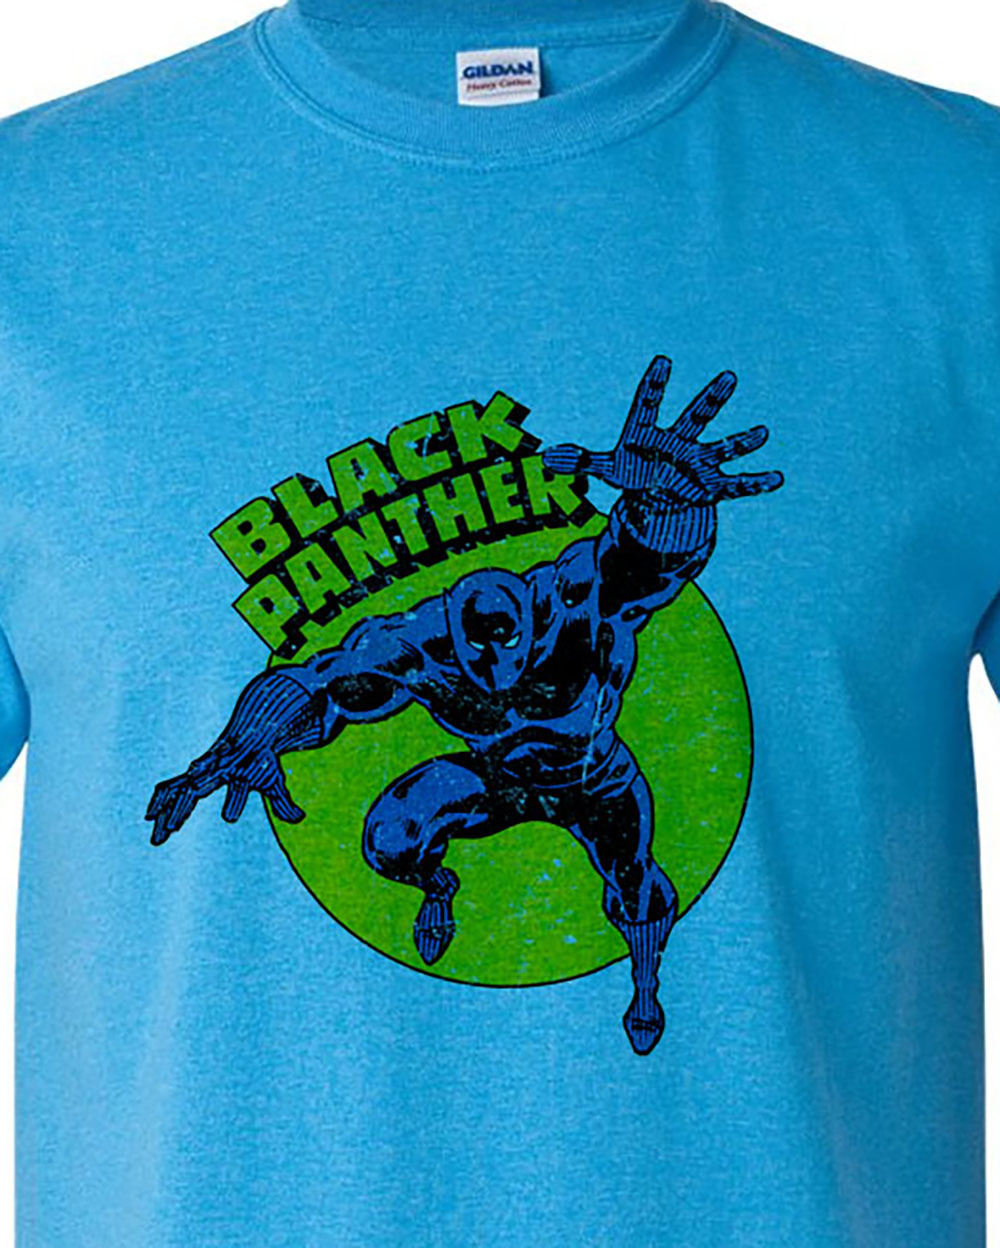 Black Panther T shirt retro Marvel comic book superhero cotton blend graphic tee